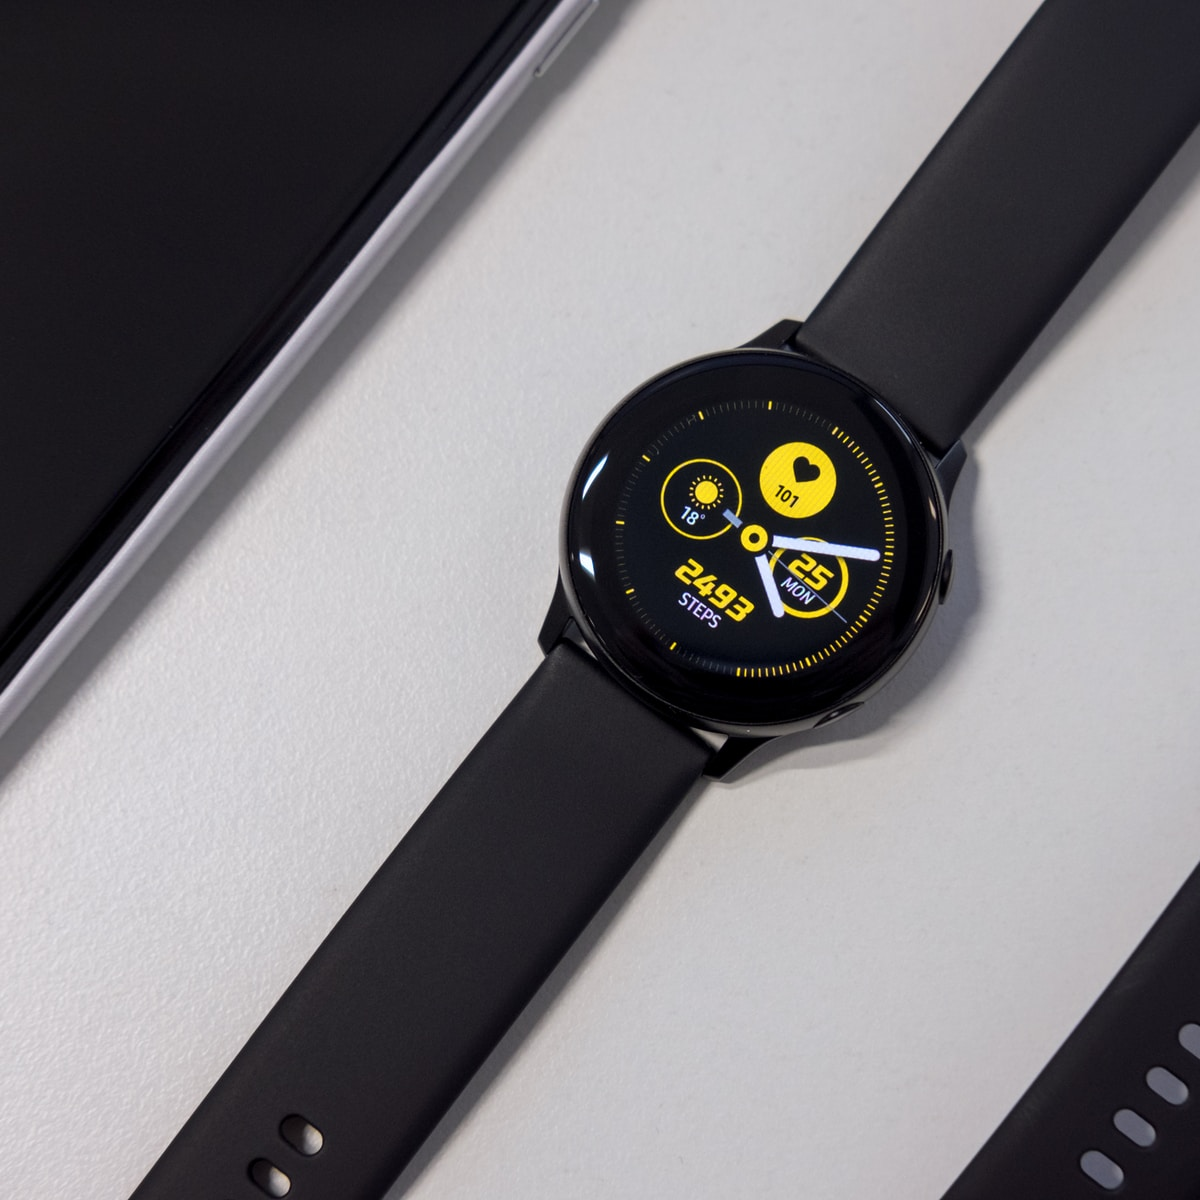 turned-on black smartwatch on white surface